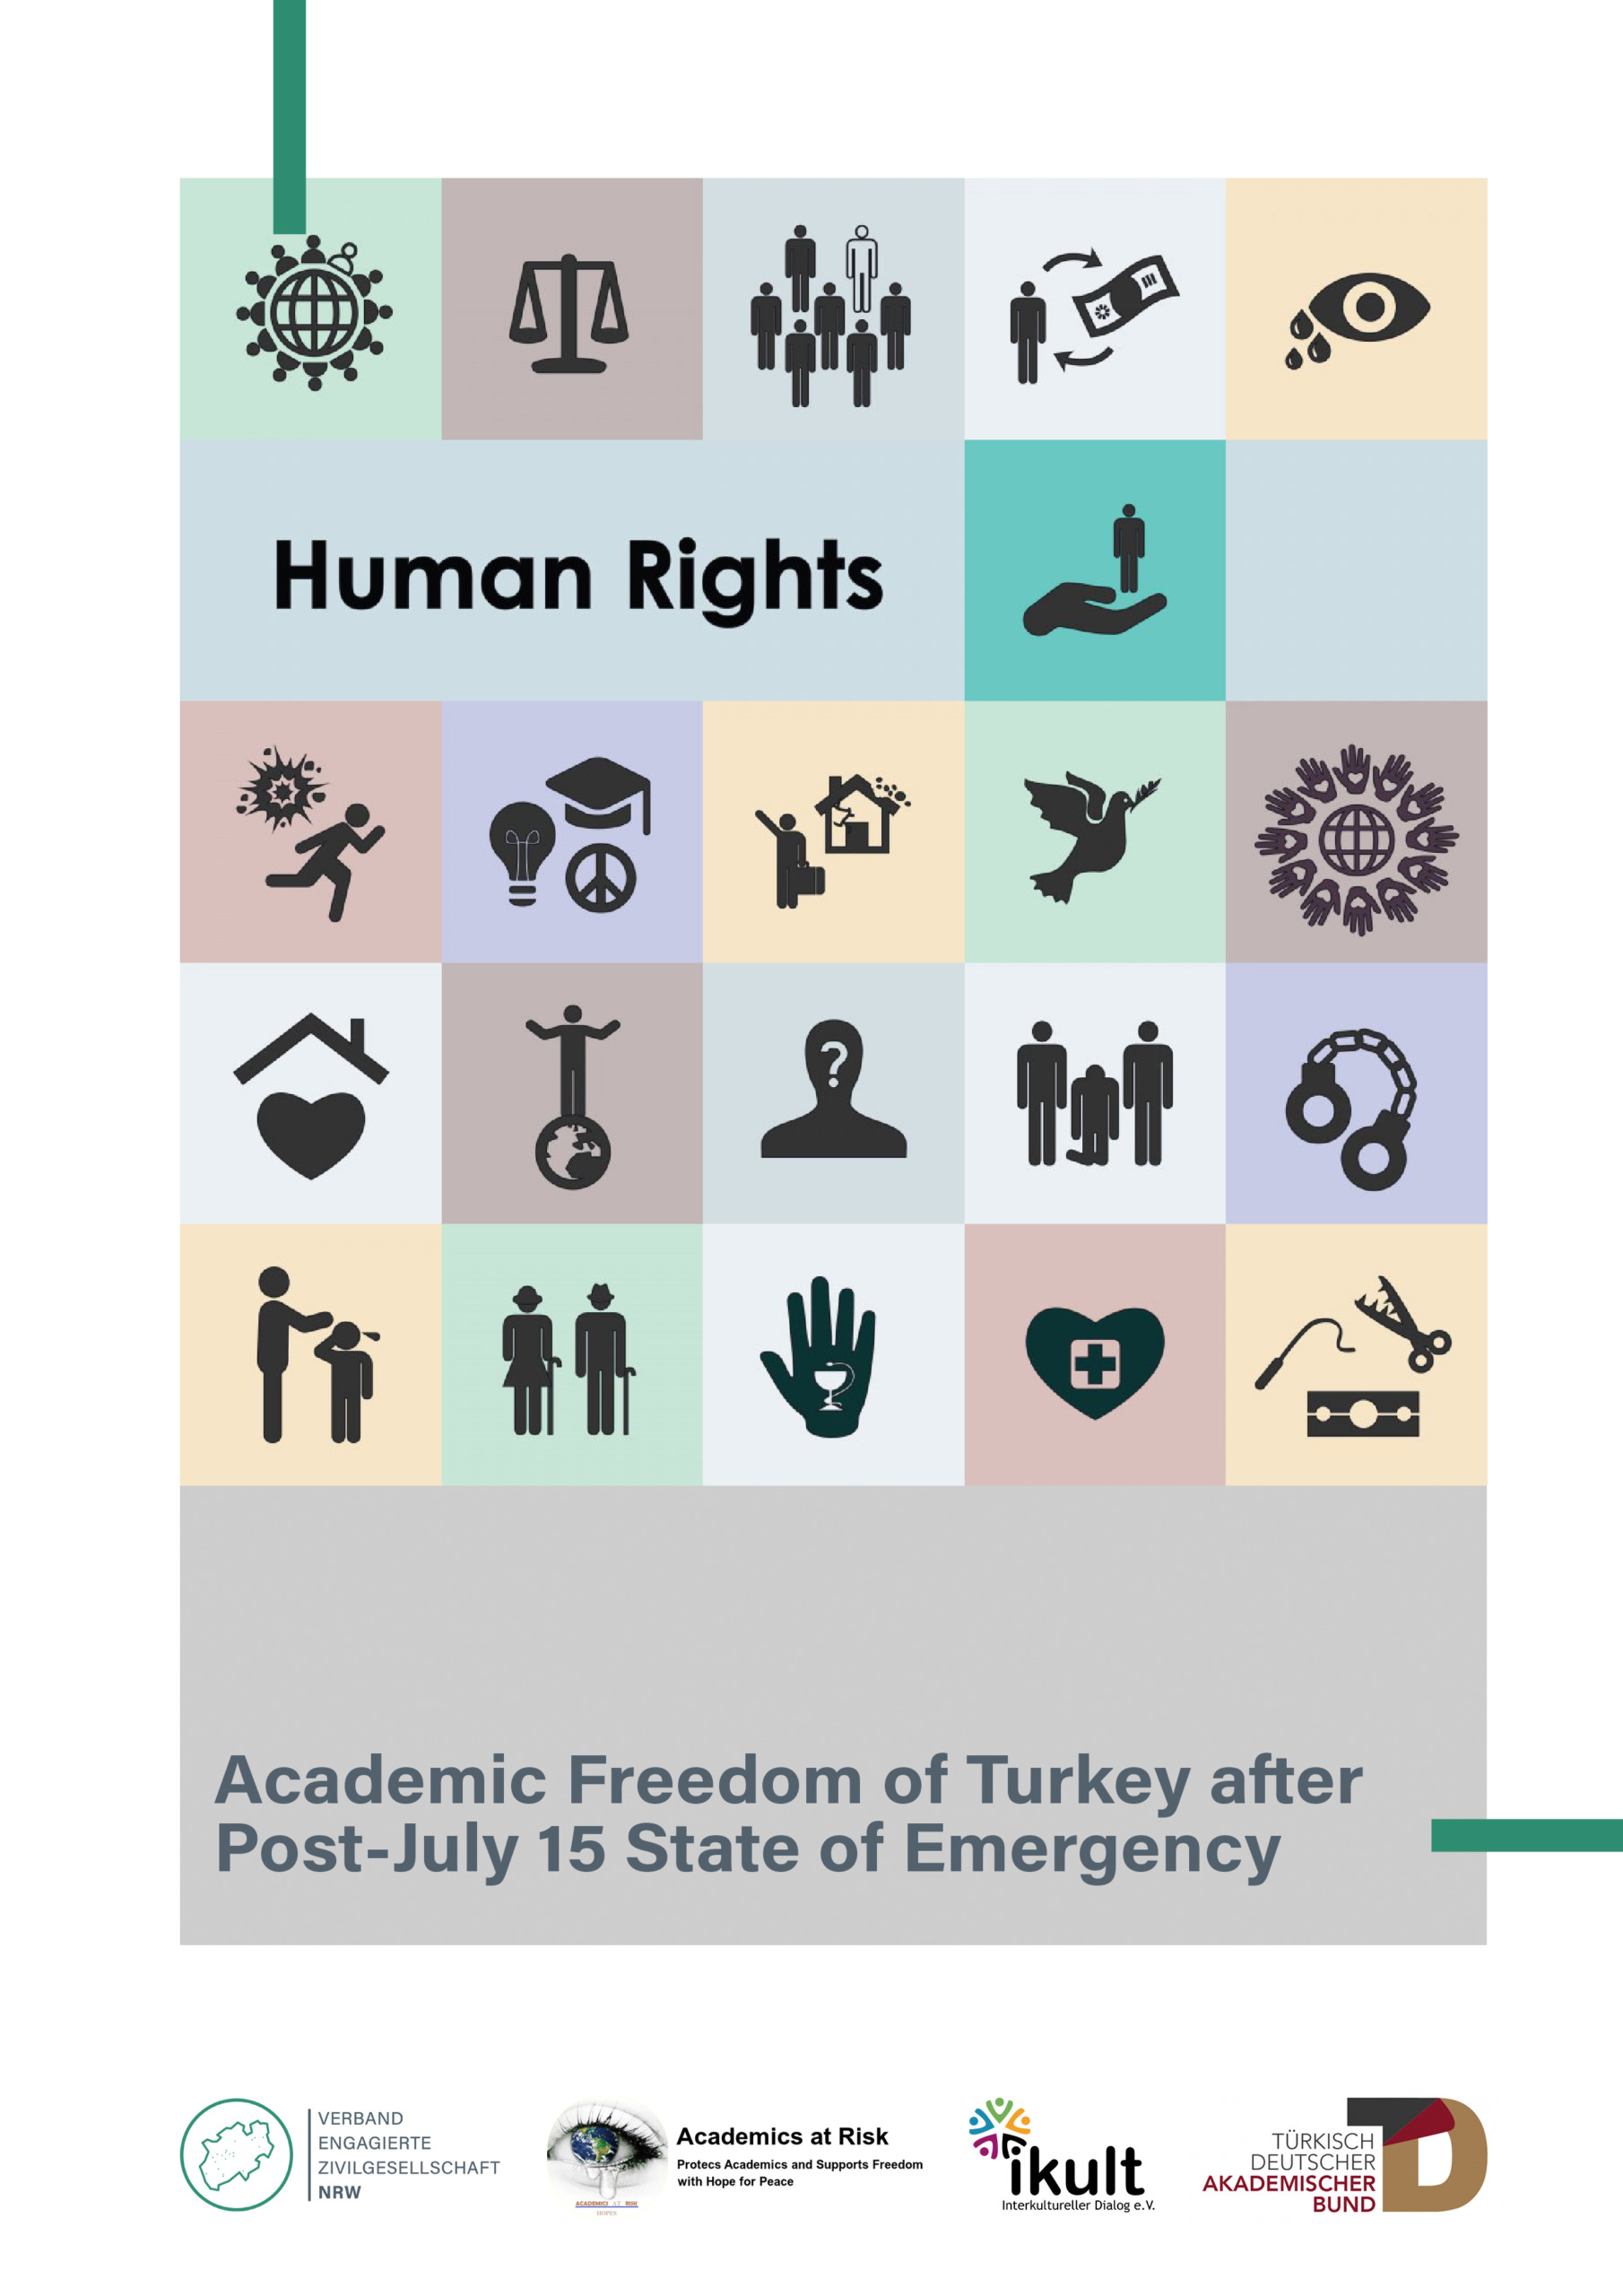 Academic Freedom of Turkey after Post-July 15 State of Emergency